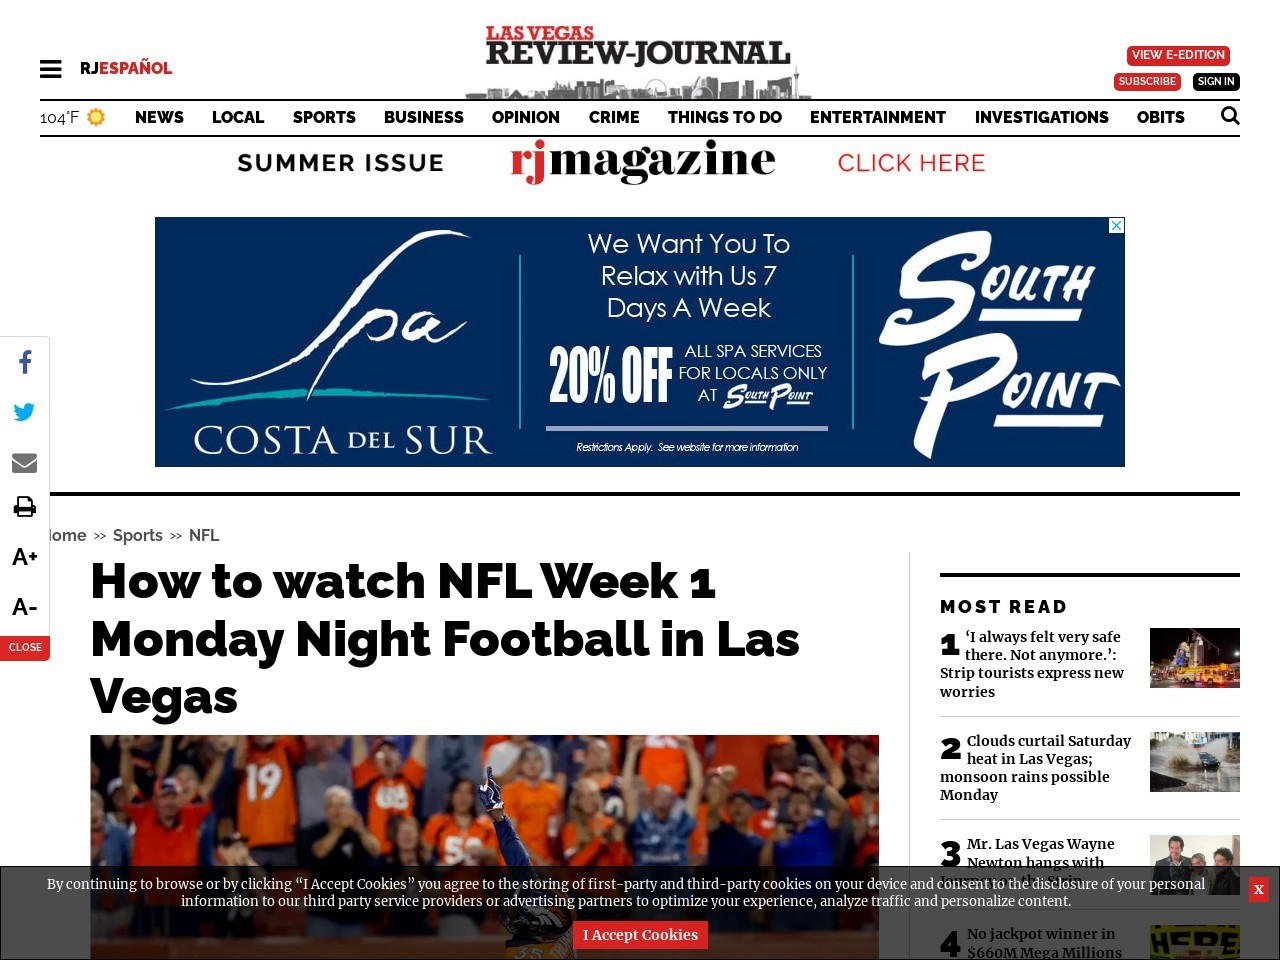 How to watch NFL Week 1 Monday Night Football in Las Vegas